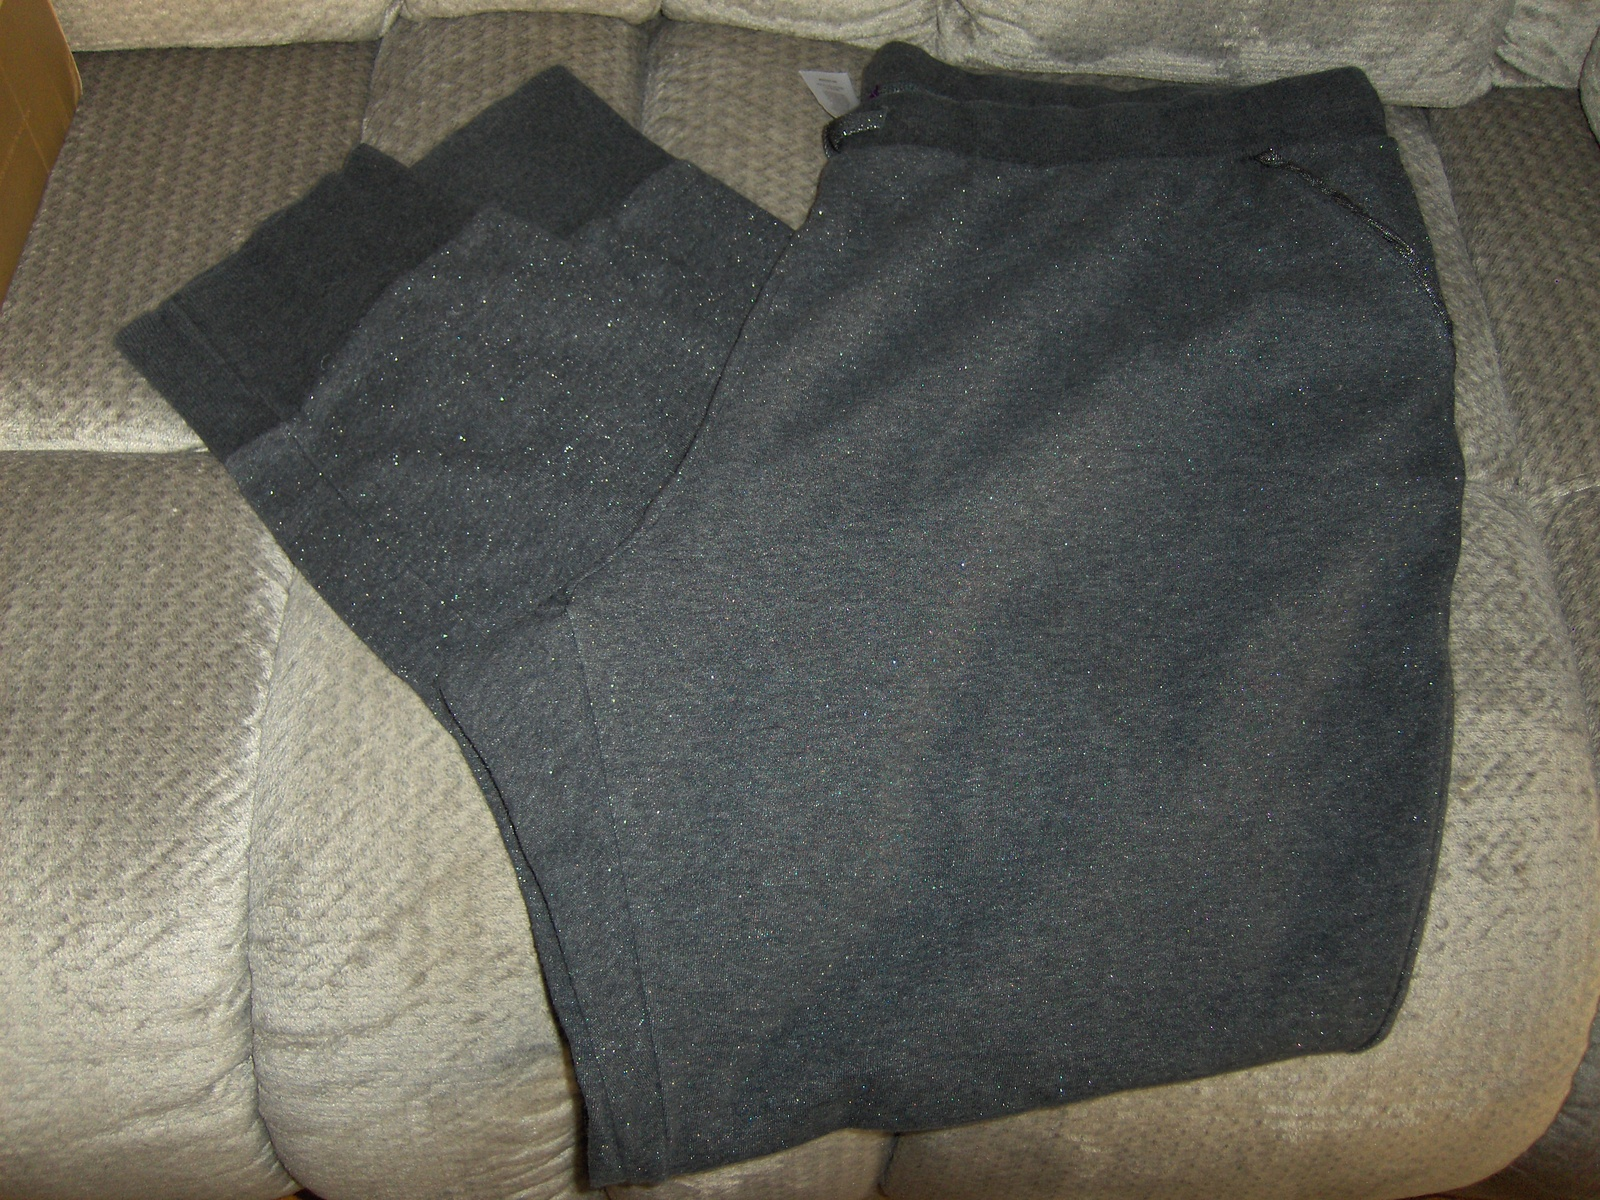 Beverly Drive Womens Gray Pants 24 - 26 With Silver Sparkle Comfort & Bling Too